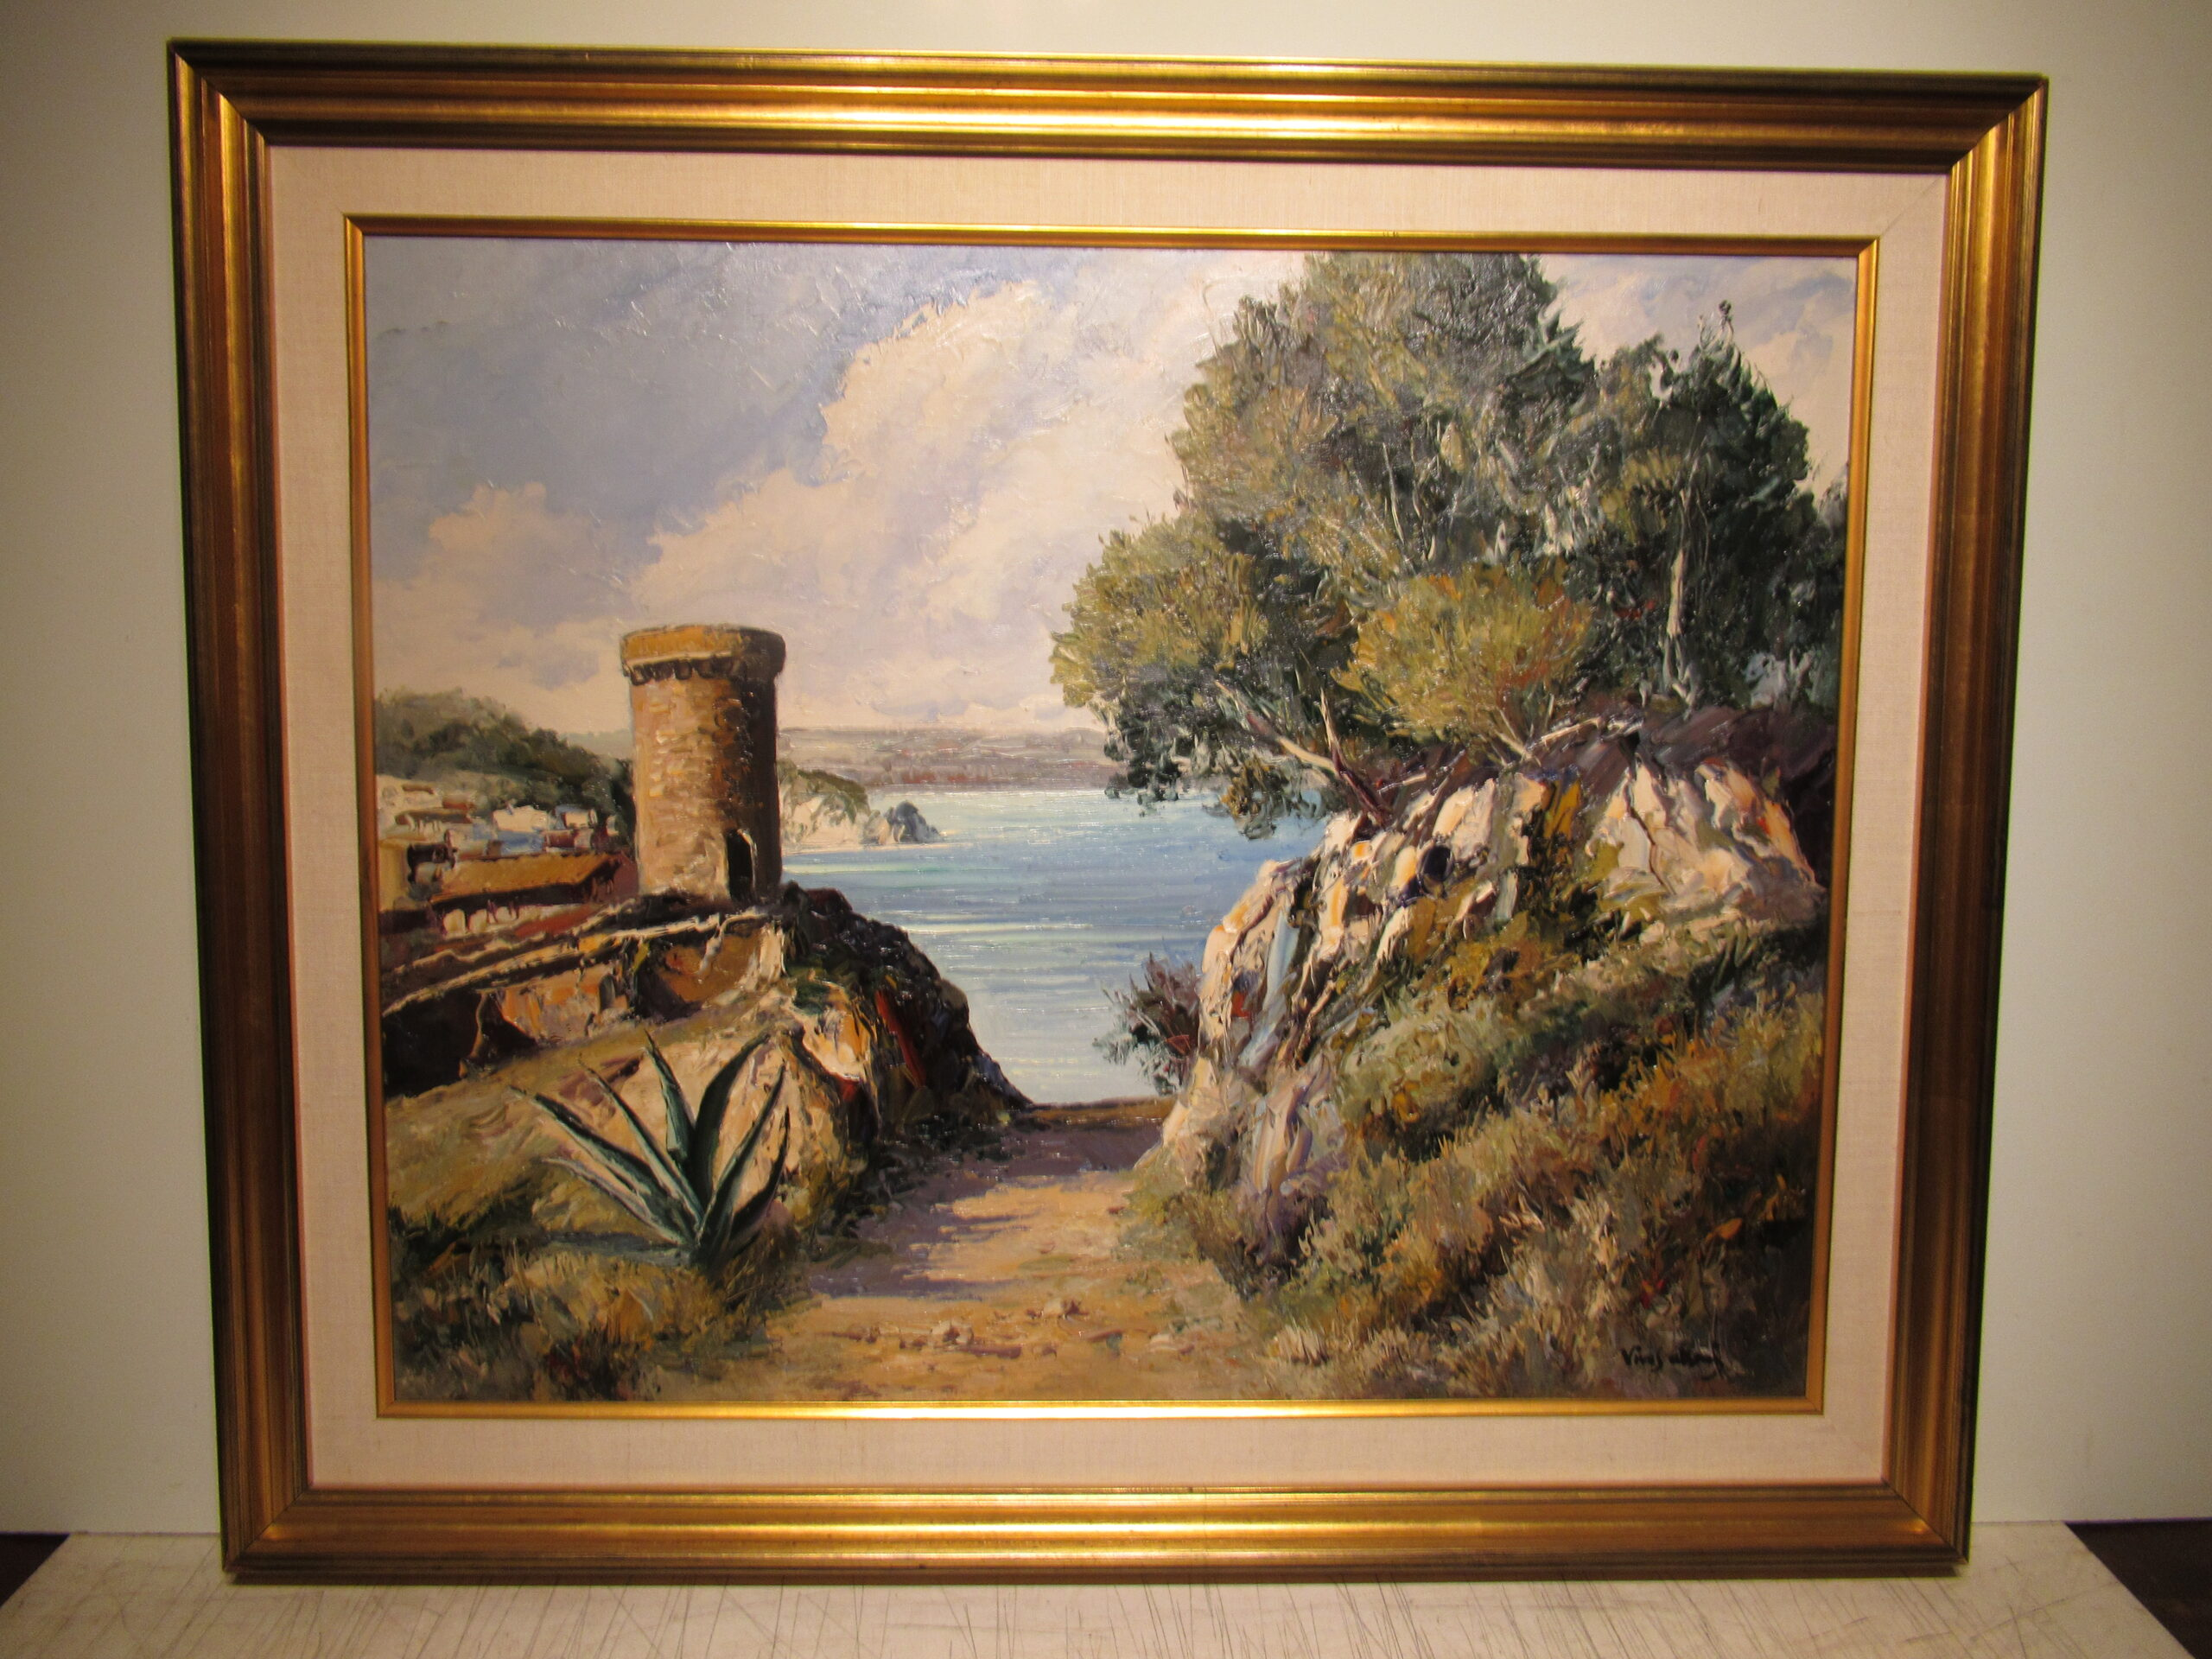 24×30 Vives Atsara 1962 Tossa de Mar Oil Painting